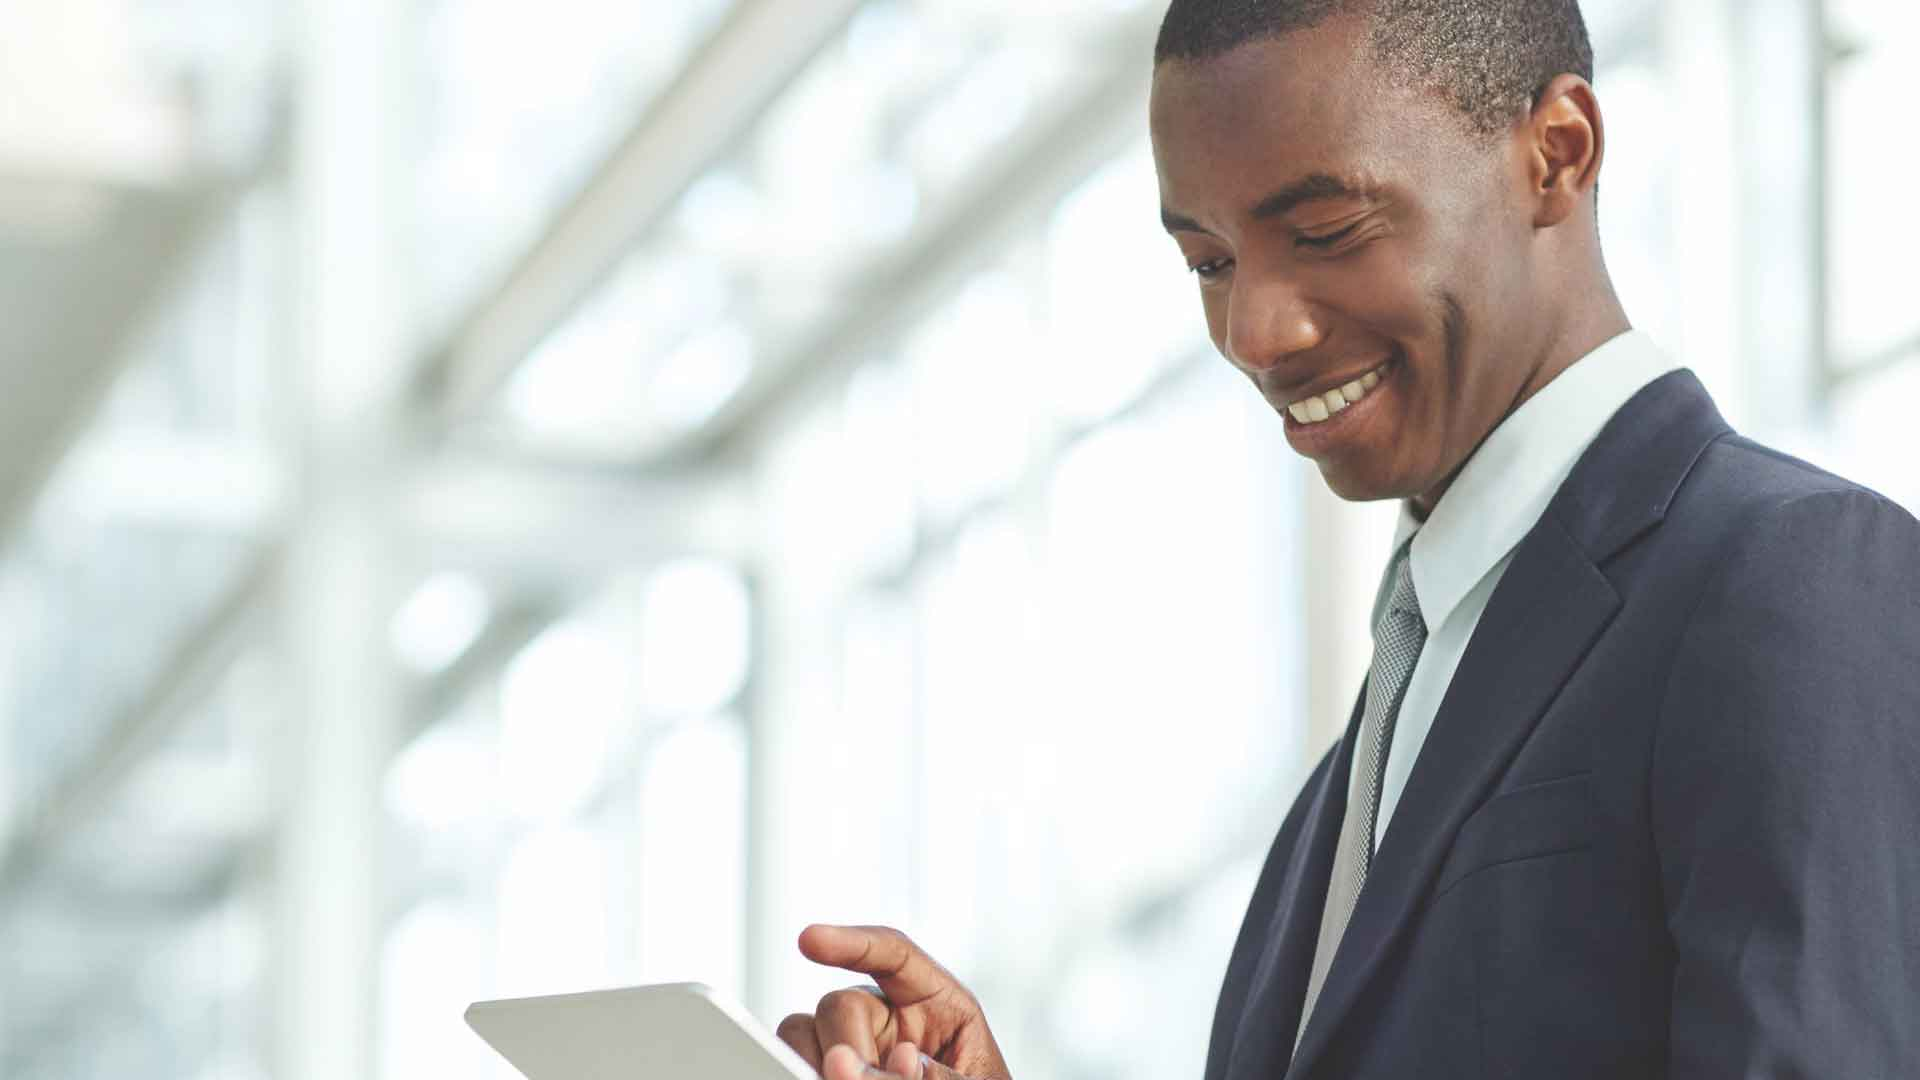 person-on-the-right-side-in-suite-and-tie-holding-tablet-cropped